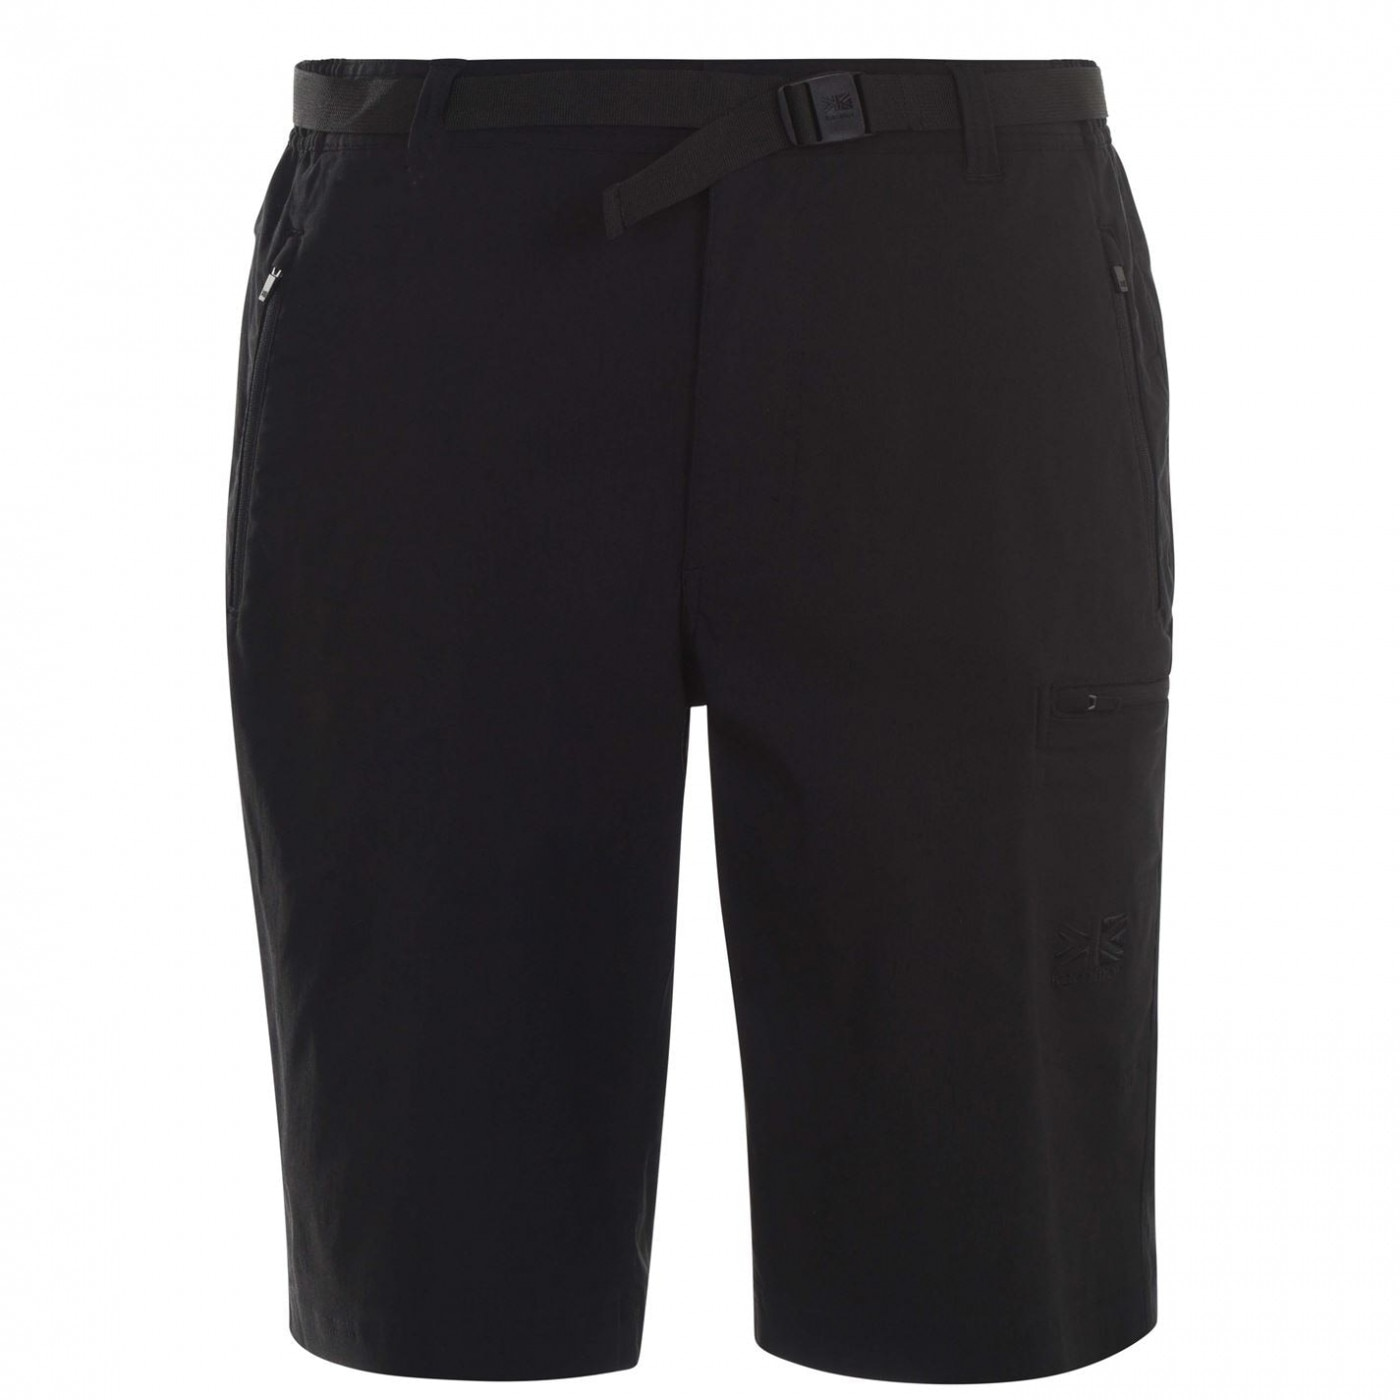 Karrimor Panther Shorts Mens